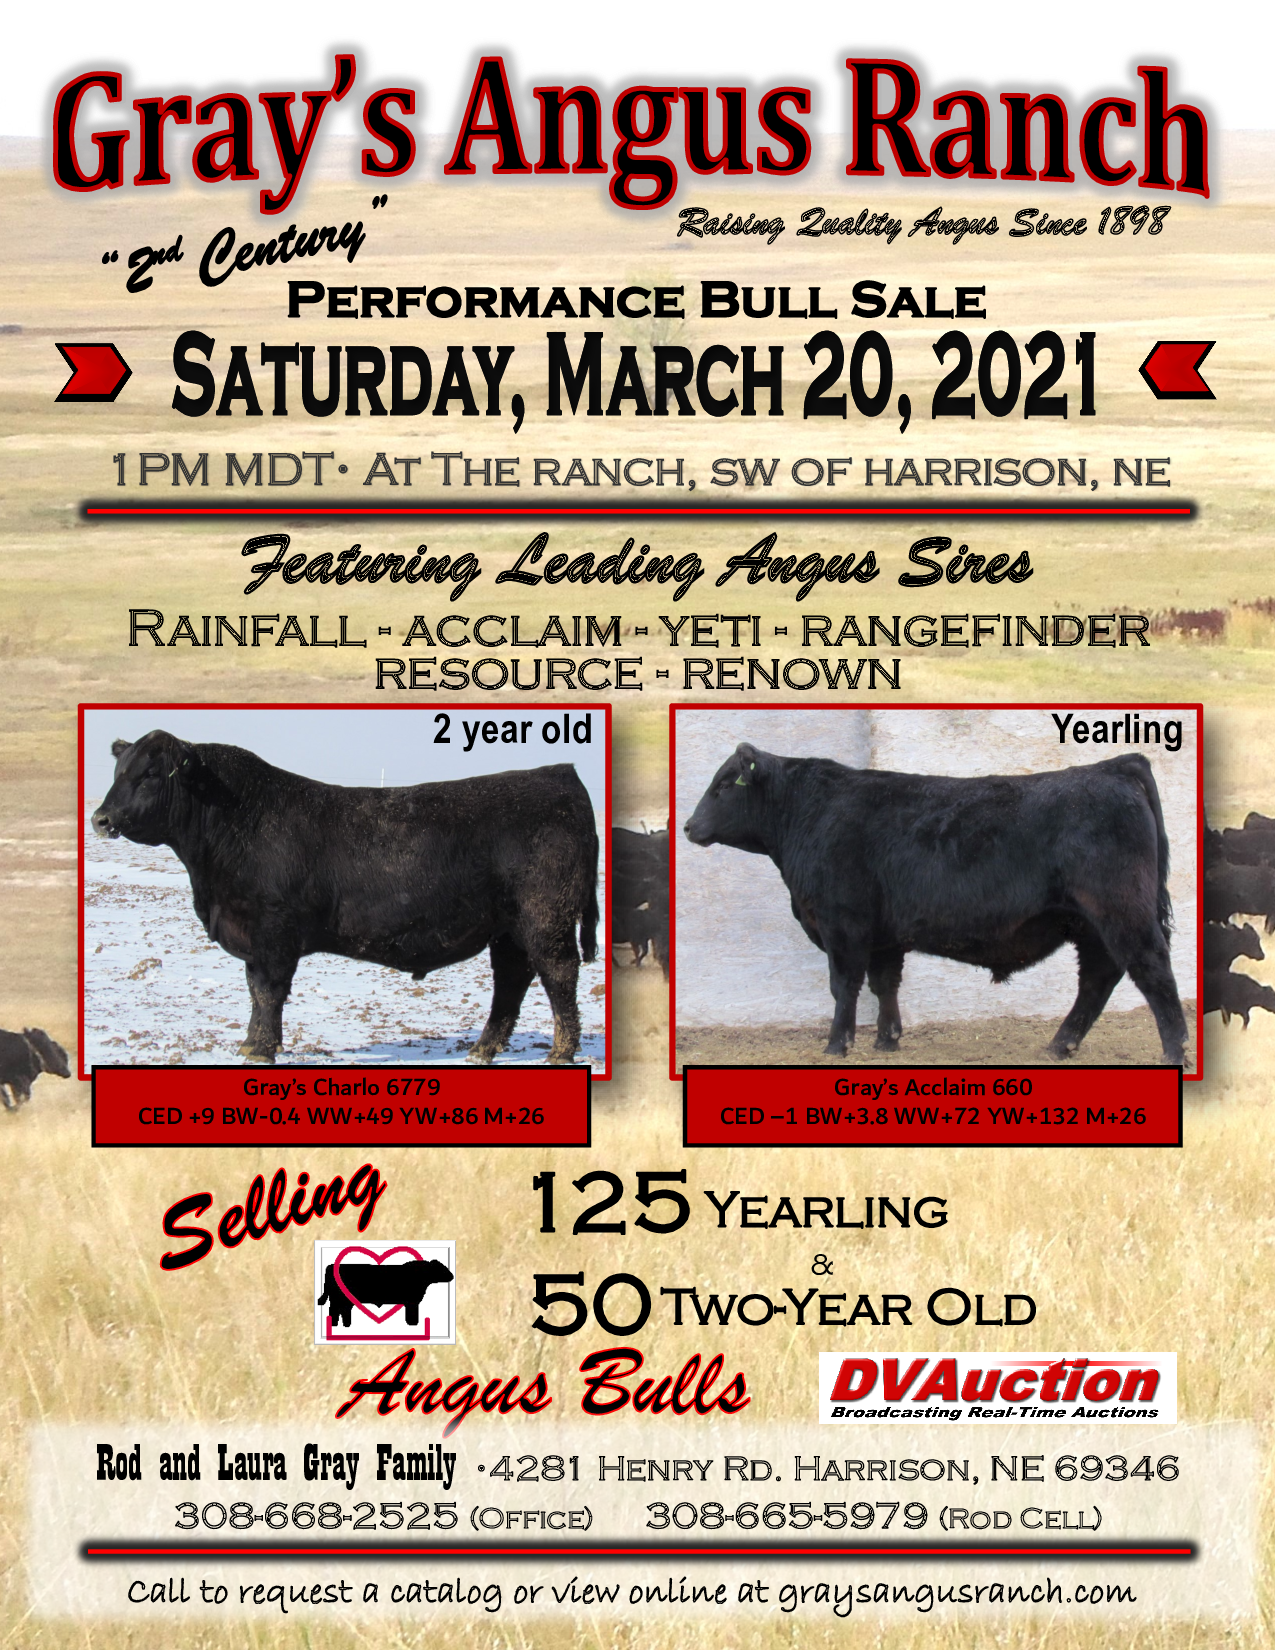 Gray's Angus Performance Bull Sale